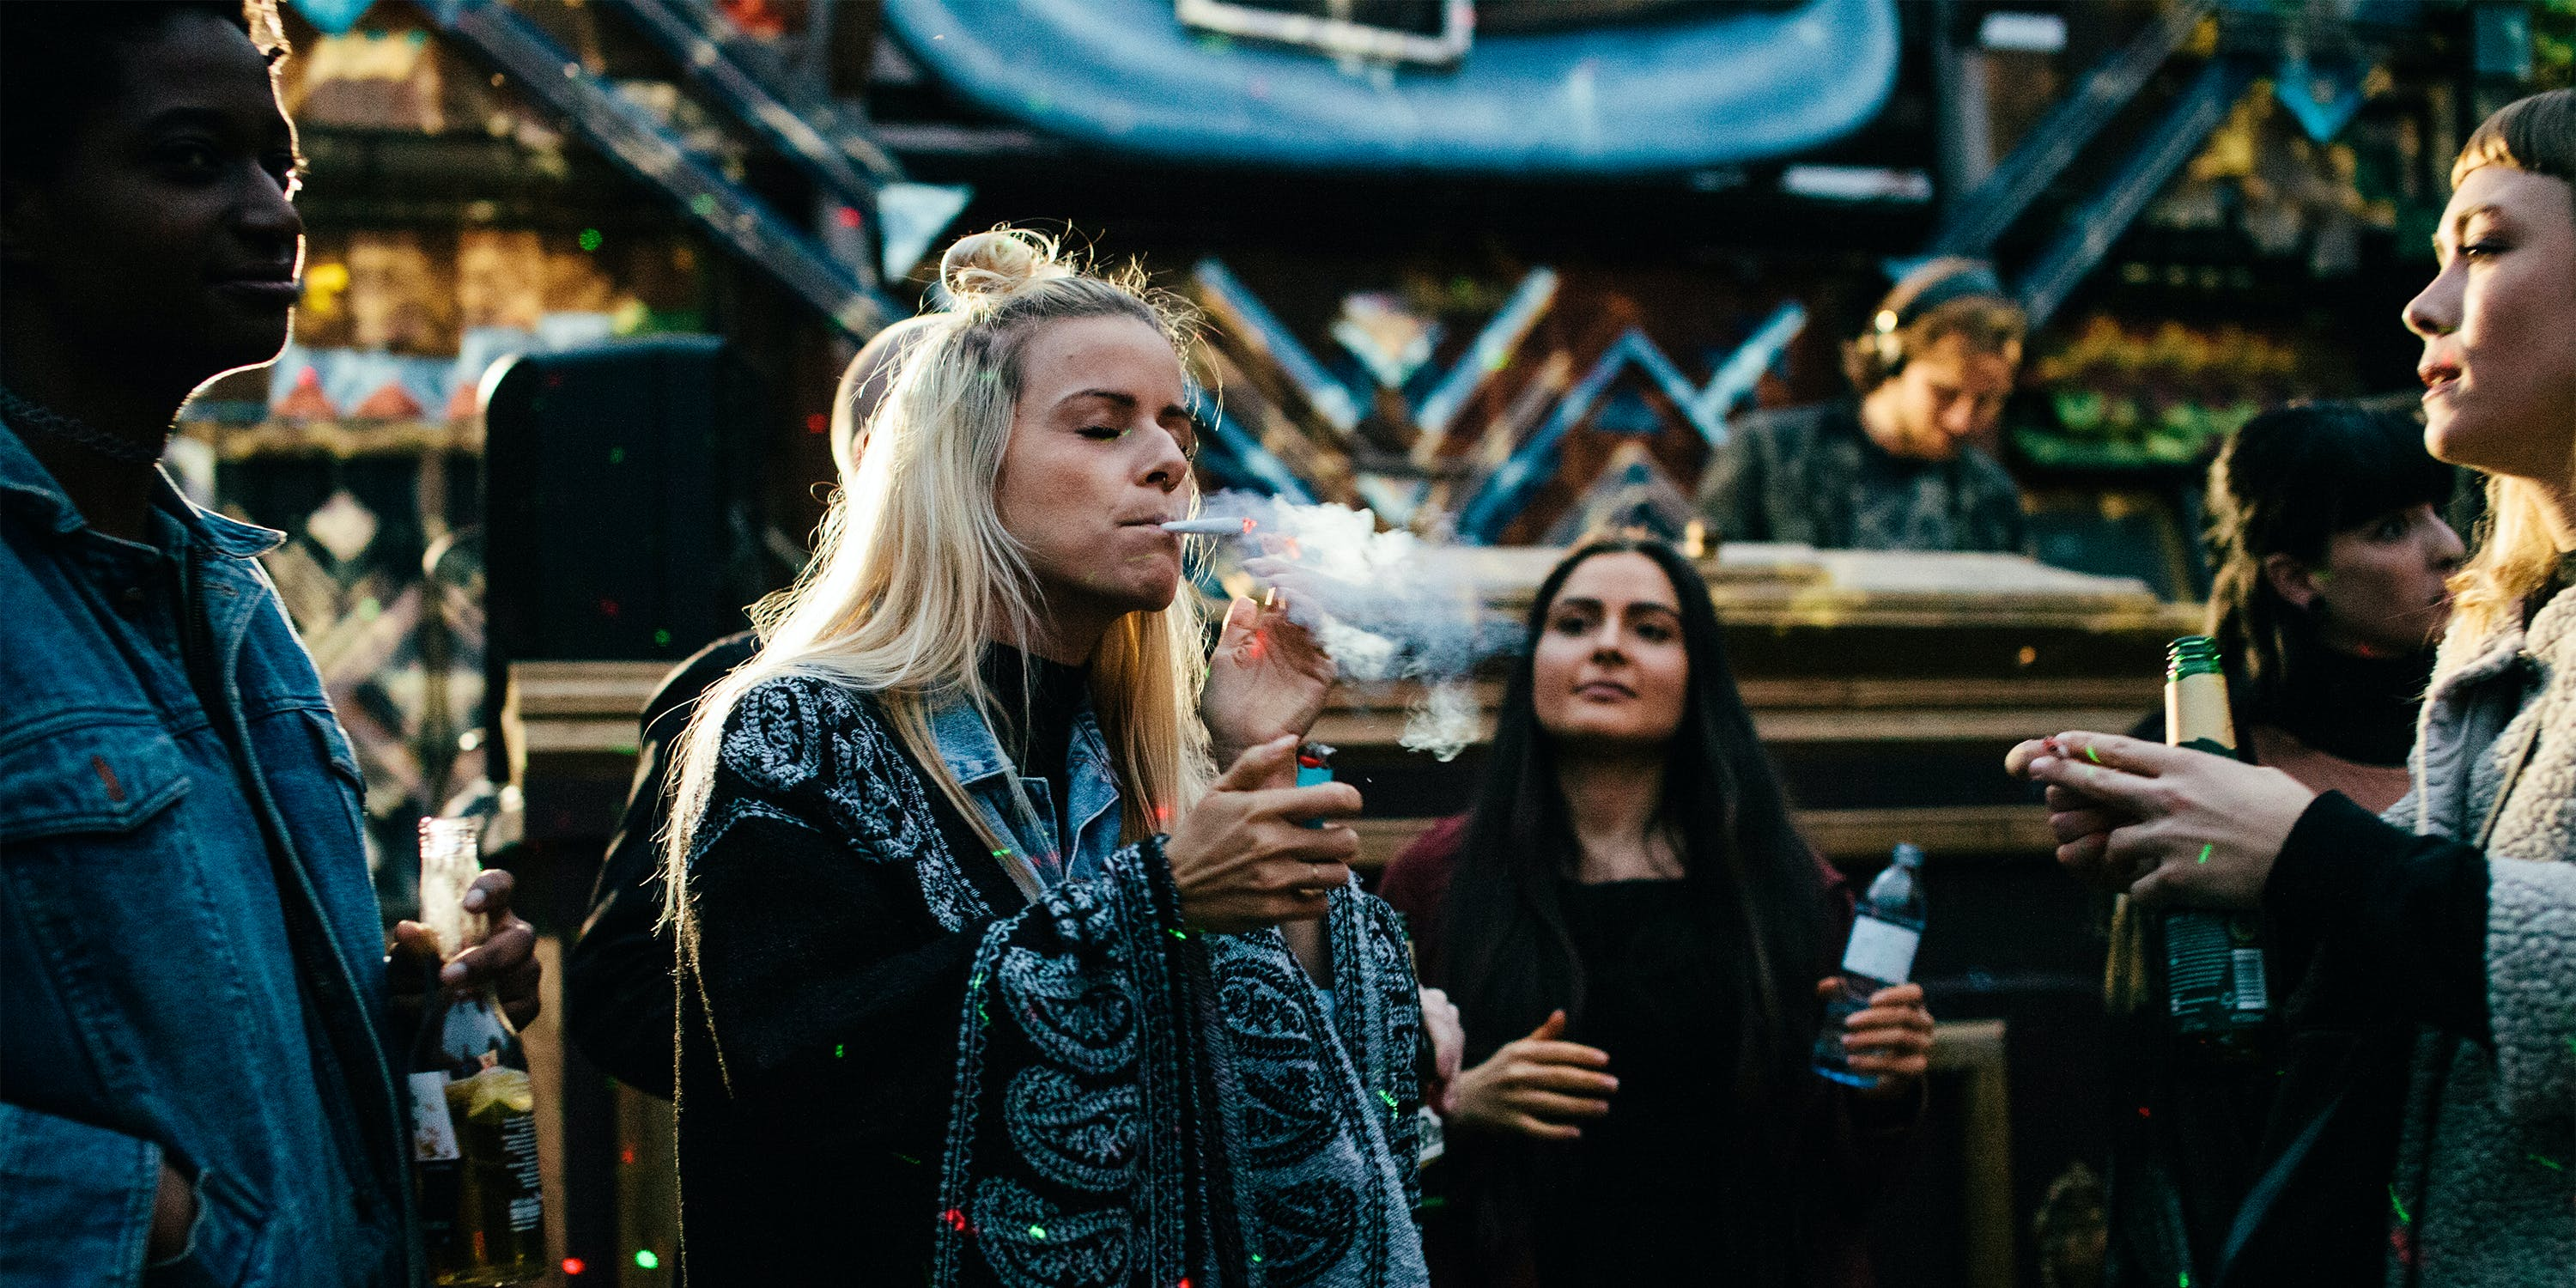 7 Pro Tips for Throwing a Kickass 420 Party